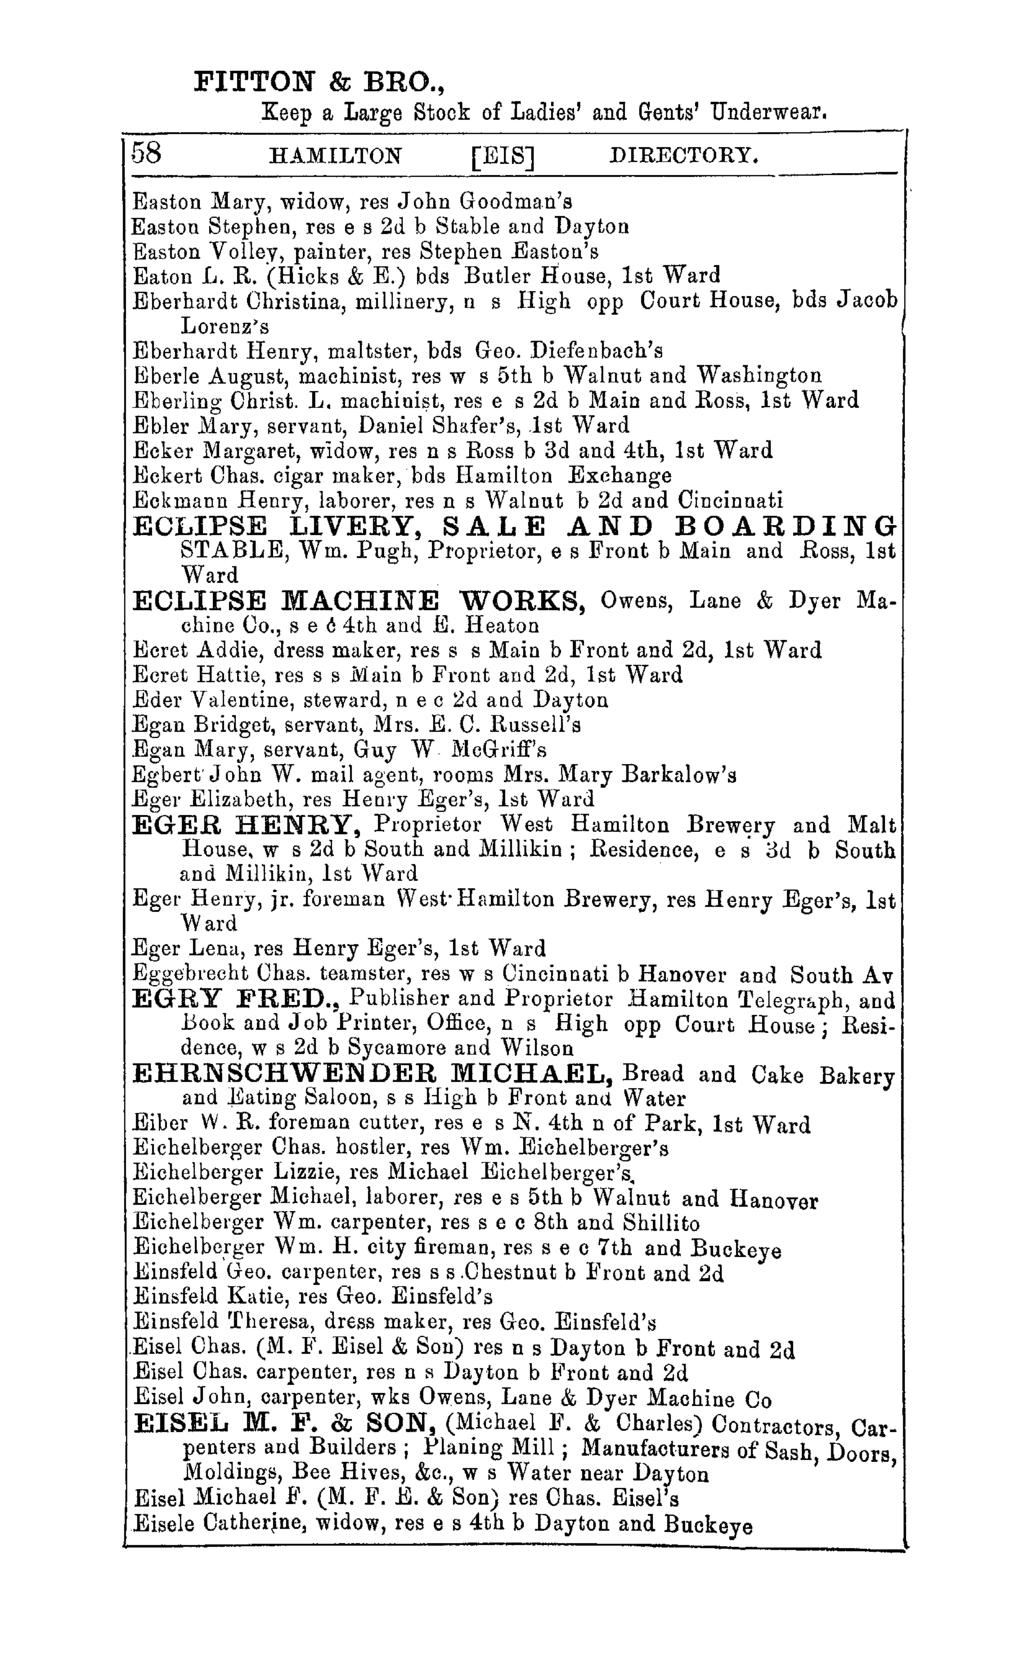 FITTON & BRO., Keep a Large Stock of Ladies' and Gents' Underwear. 58 HAMILTON [ElS] DIRECTORY. Easton Mary, widow, res John Goodma.